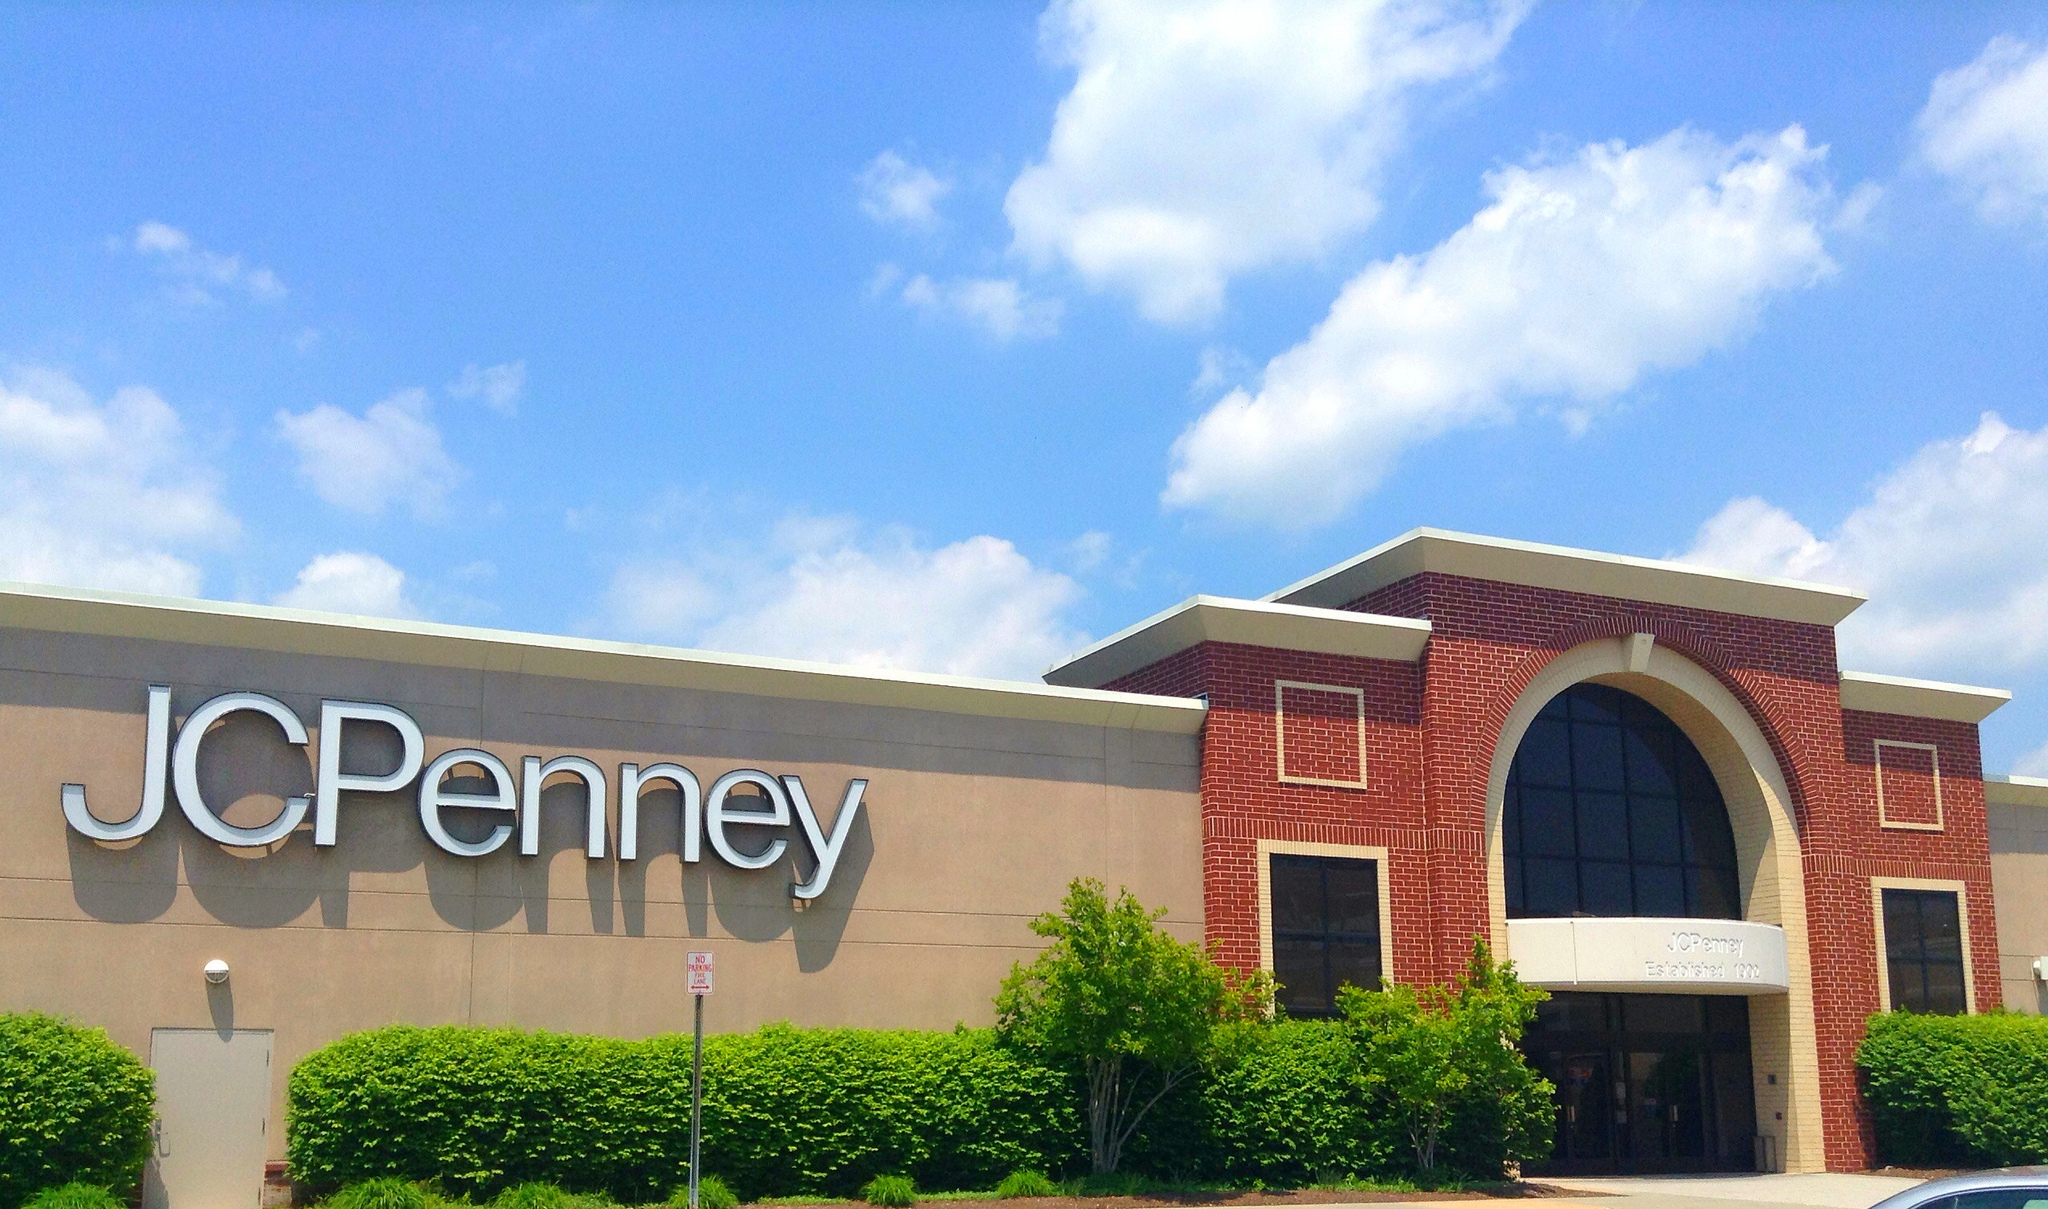 Lawsuit Over JCPenney's Alleged Imaginary Discounts Receives Class Action Status